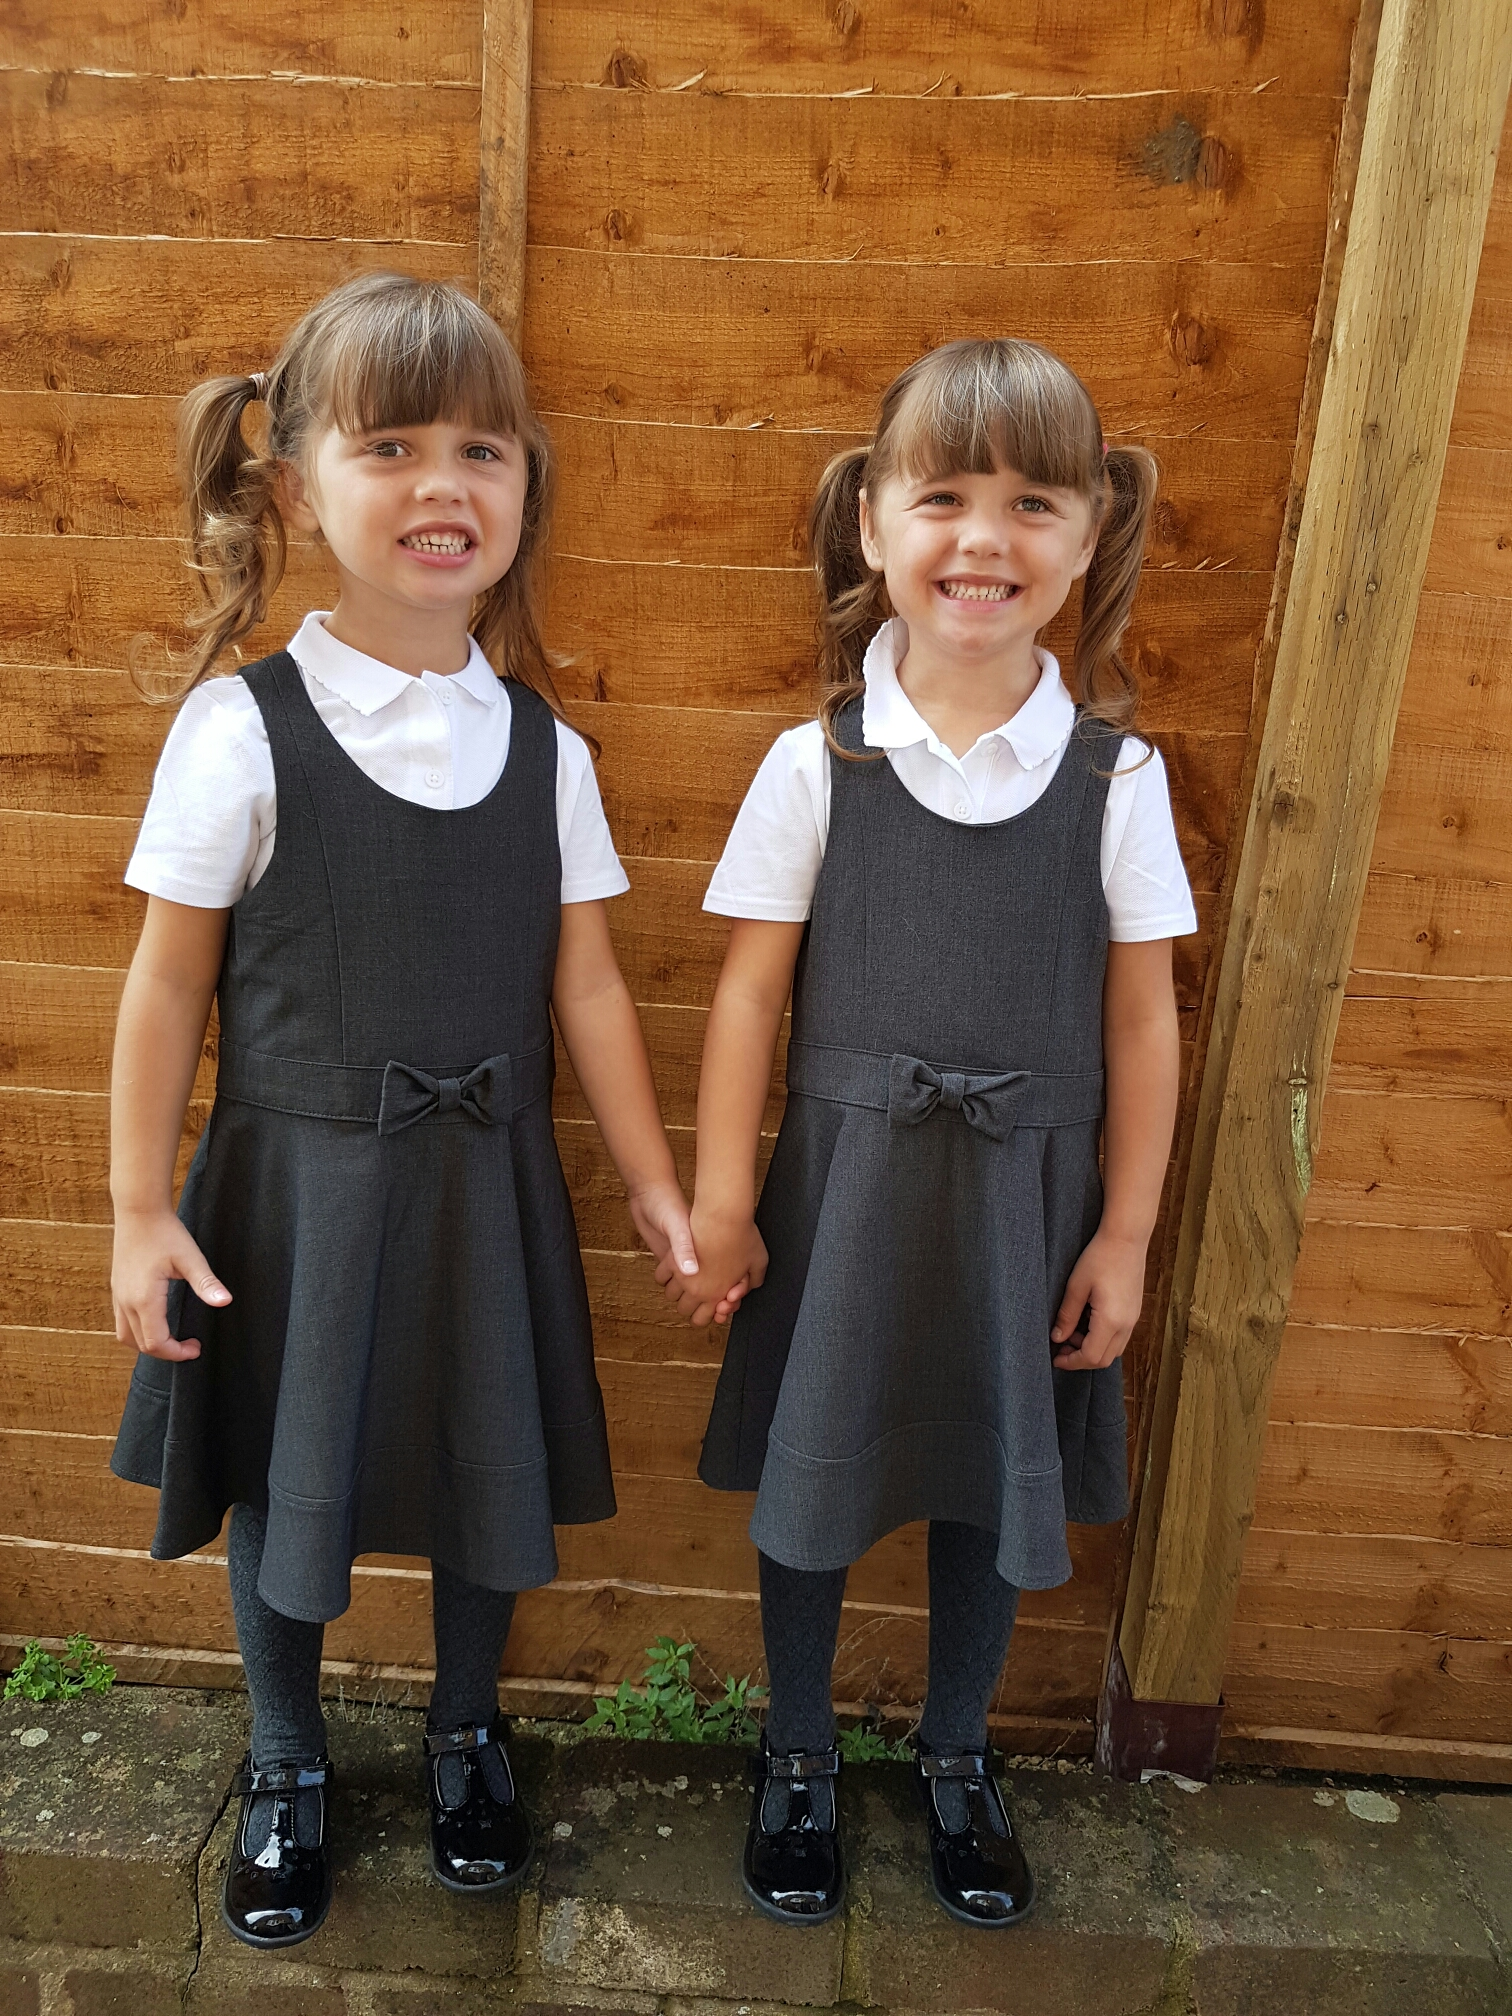 The day my twins started school. Obligatory first day of school photo of my twins holding hands by the garden fence.